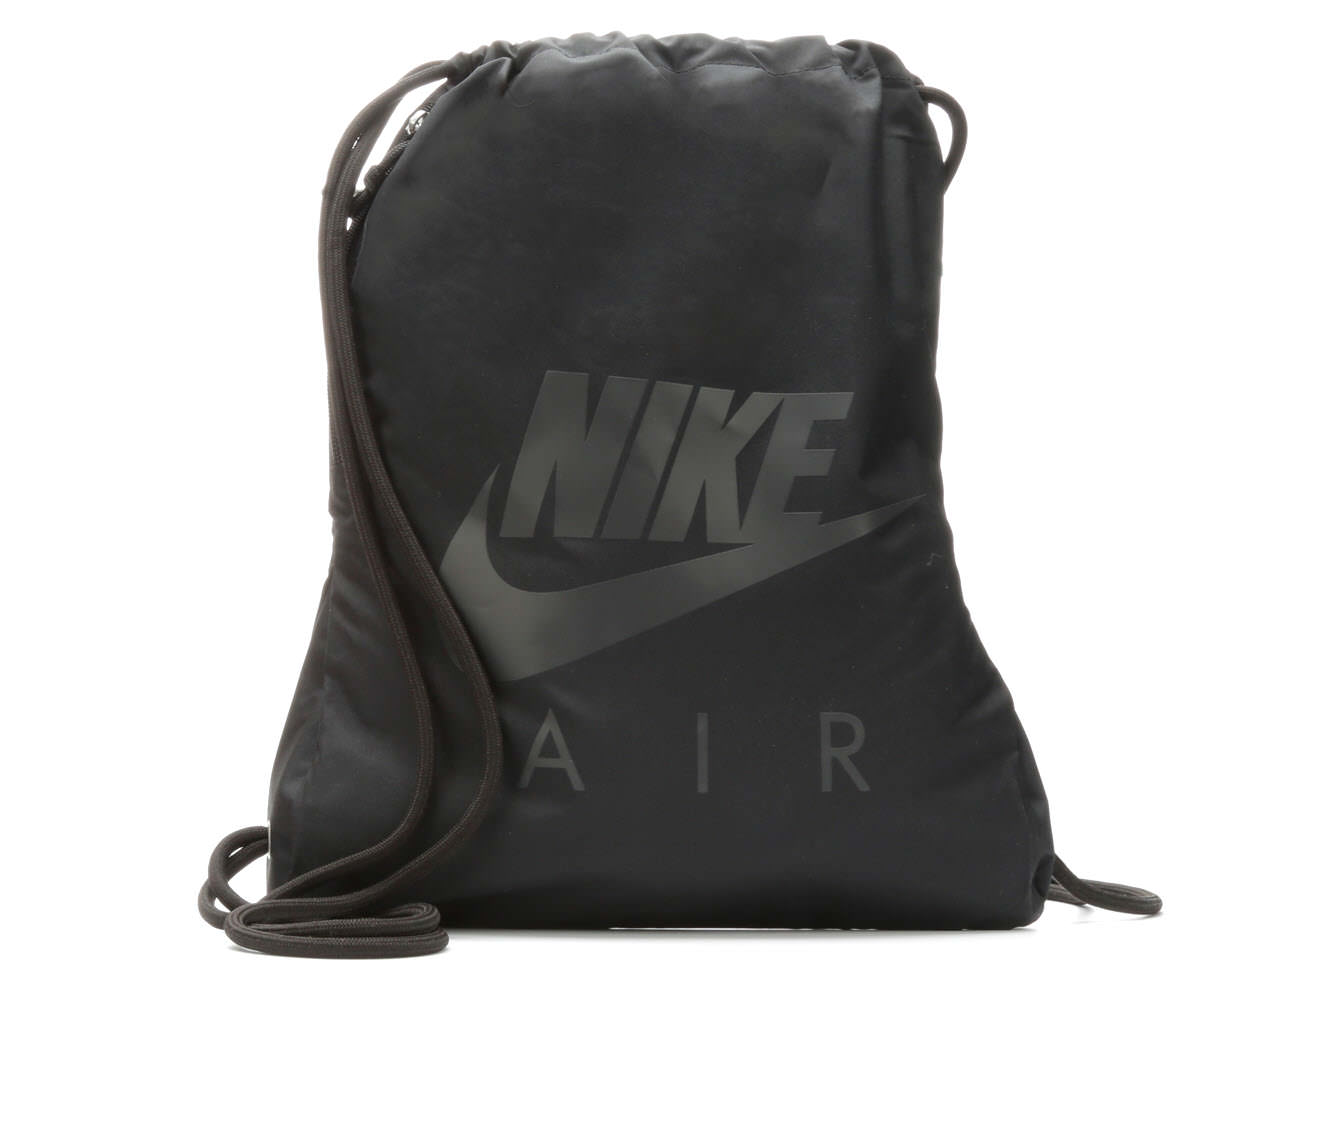 Nike Heritage Air Gymsack (Black - Size UNSZ) 1663286